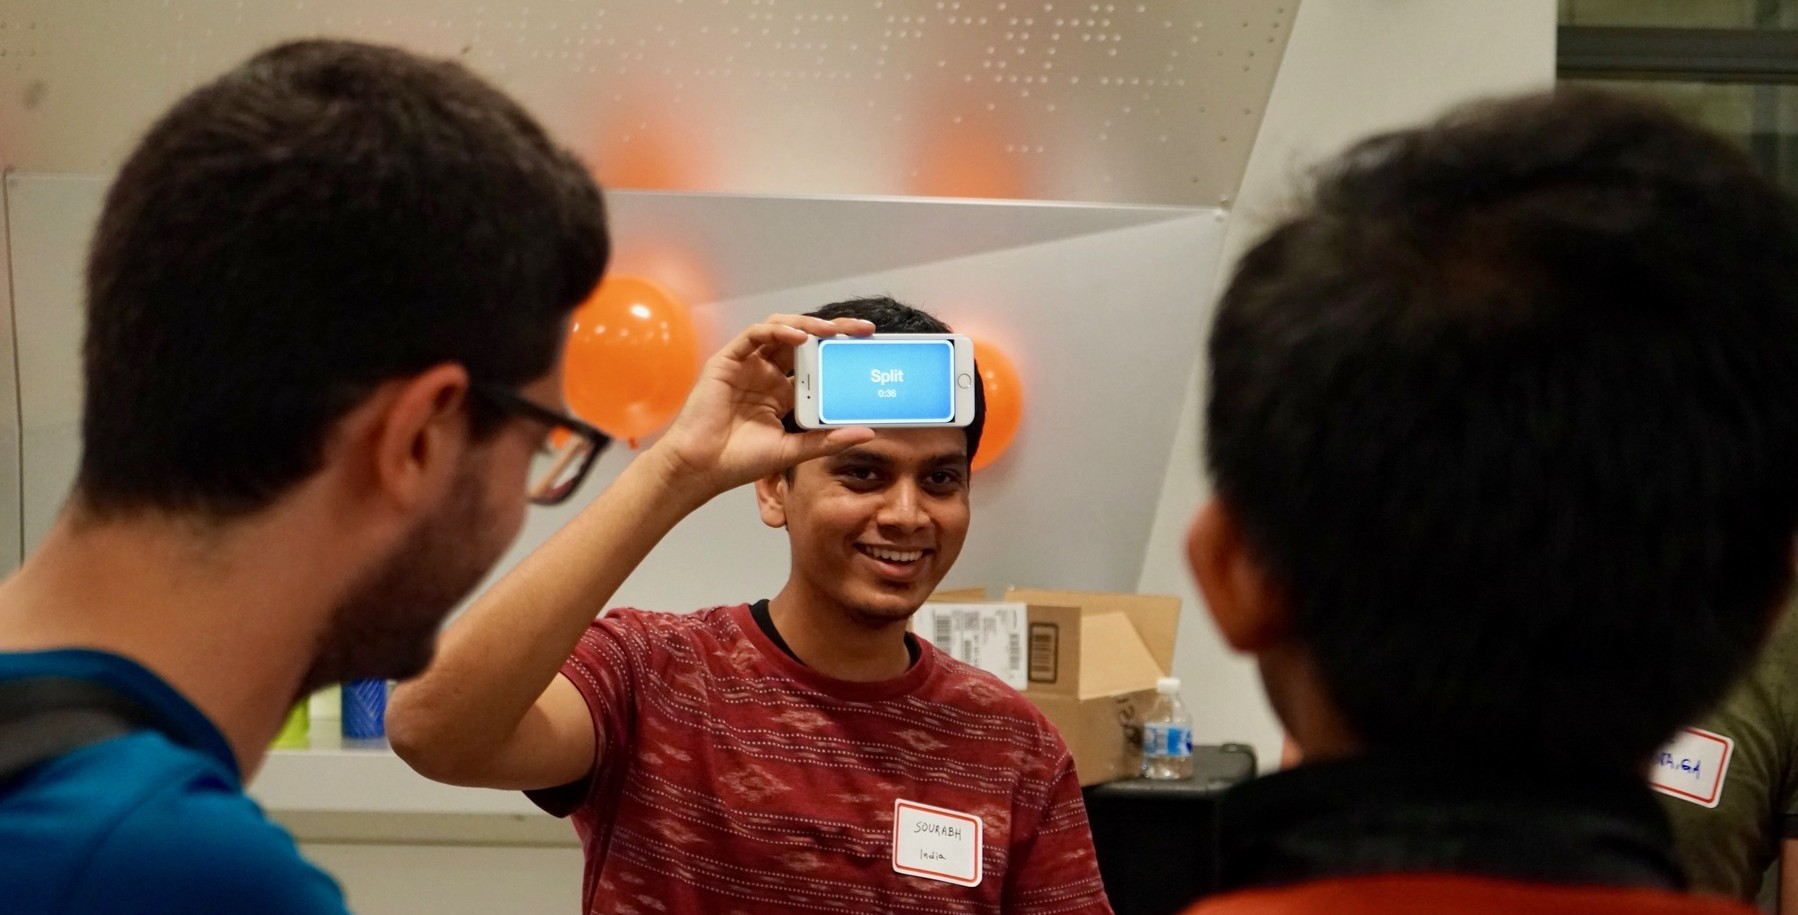 Graduate electrical engineering students playing icebreaker games during the Graduate Electrical Engineering at Columbia kick-off event